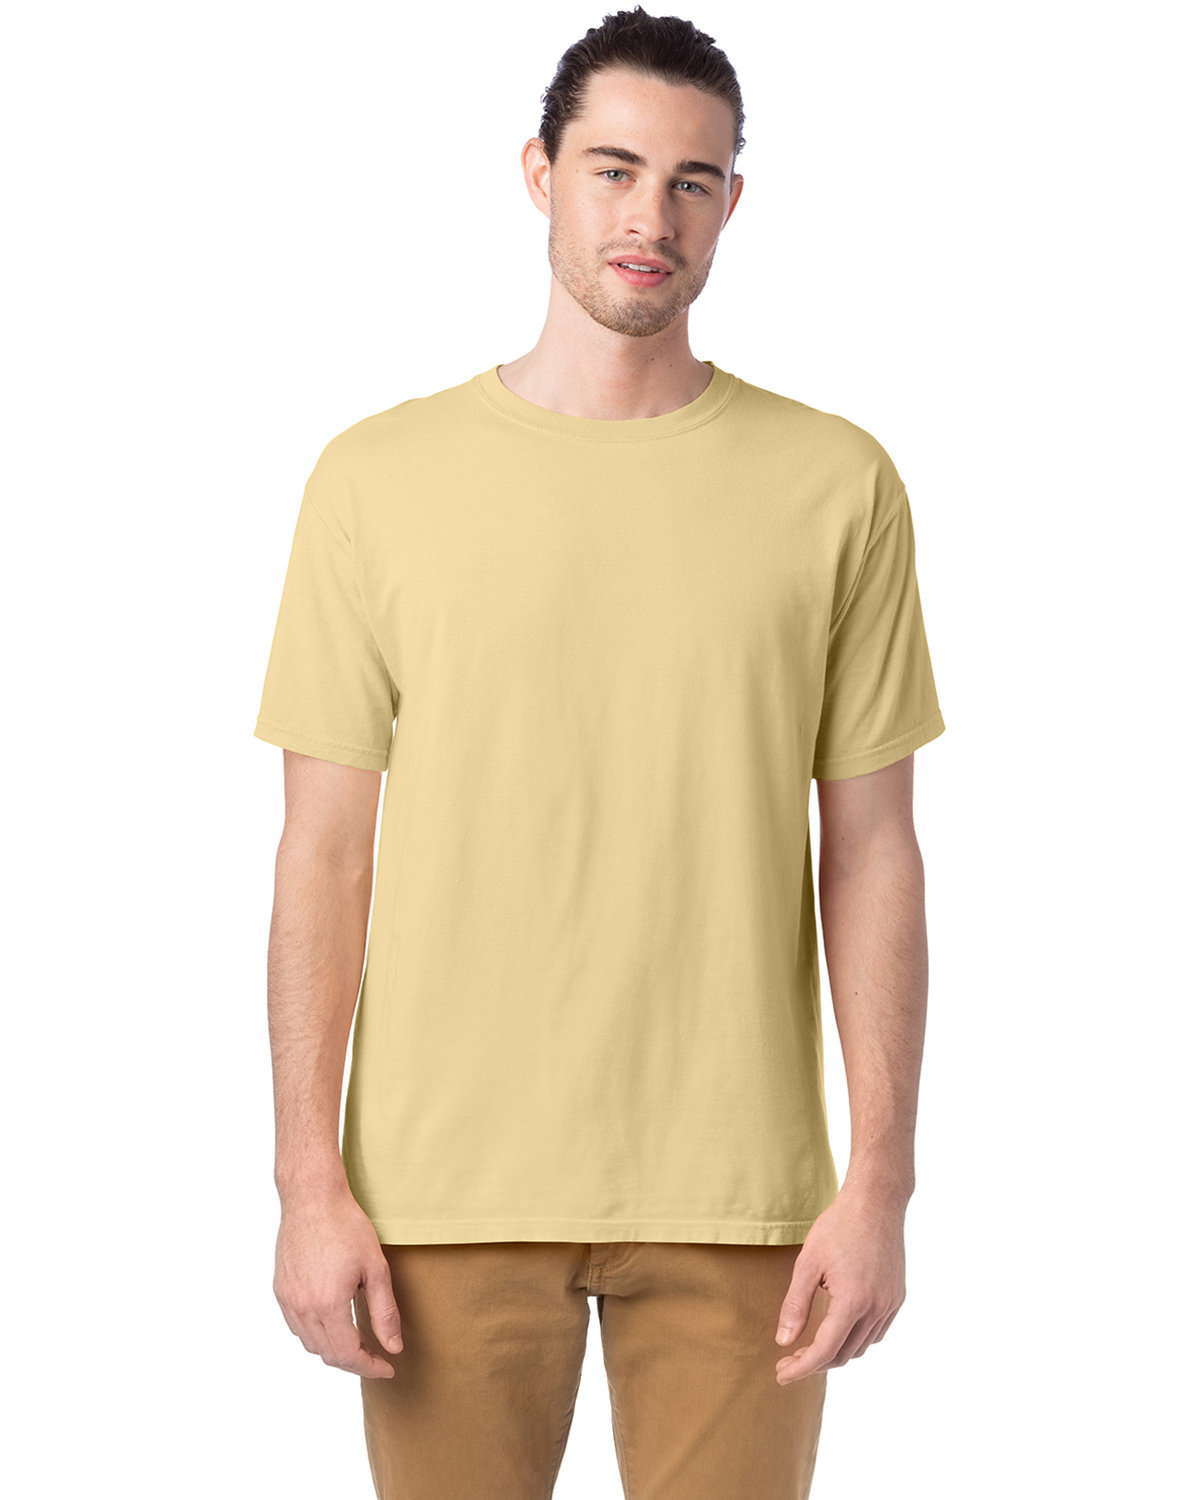 ComfortWash by Hanes Men's 5.5 oz., 100% Ringspun Cotton Garment-Dyed T-Shirt SUMMER SQUASH